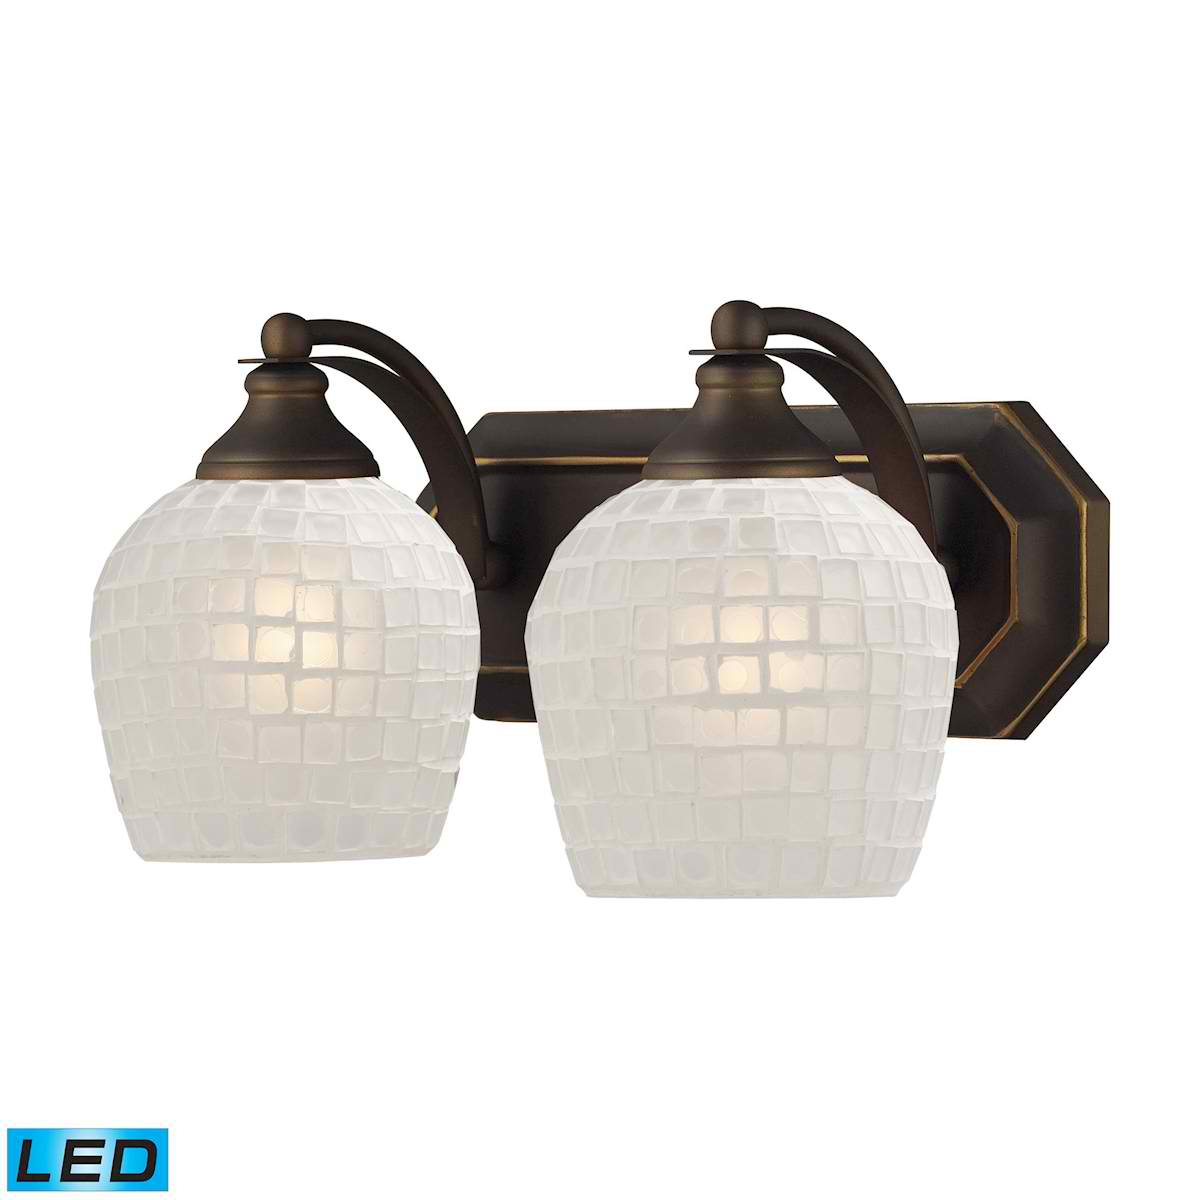 2 Light Vanity in Aged Bronze and White Mosaic Glass - LED, 800 Lumens (1600 Lumens Total) with Full Scale